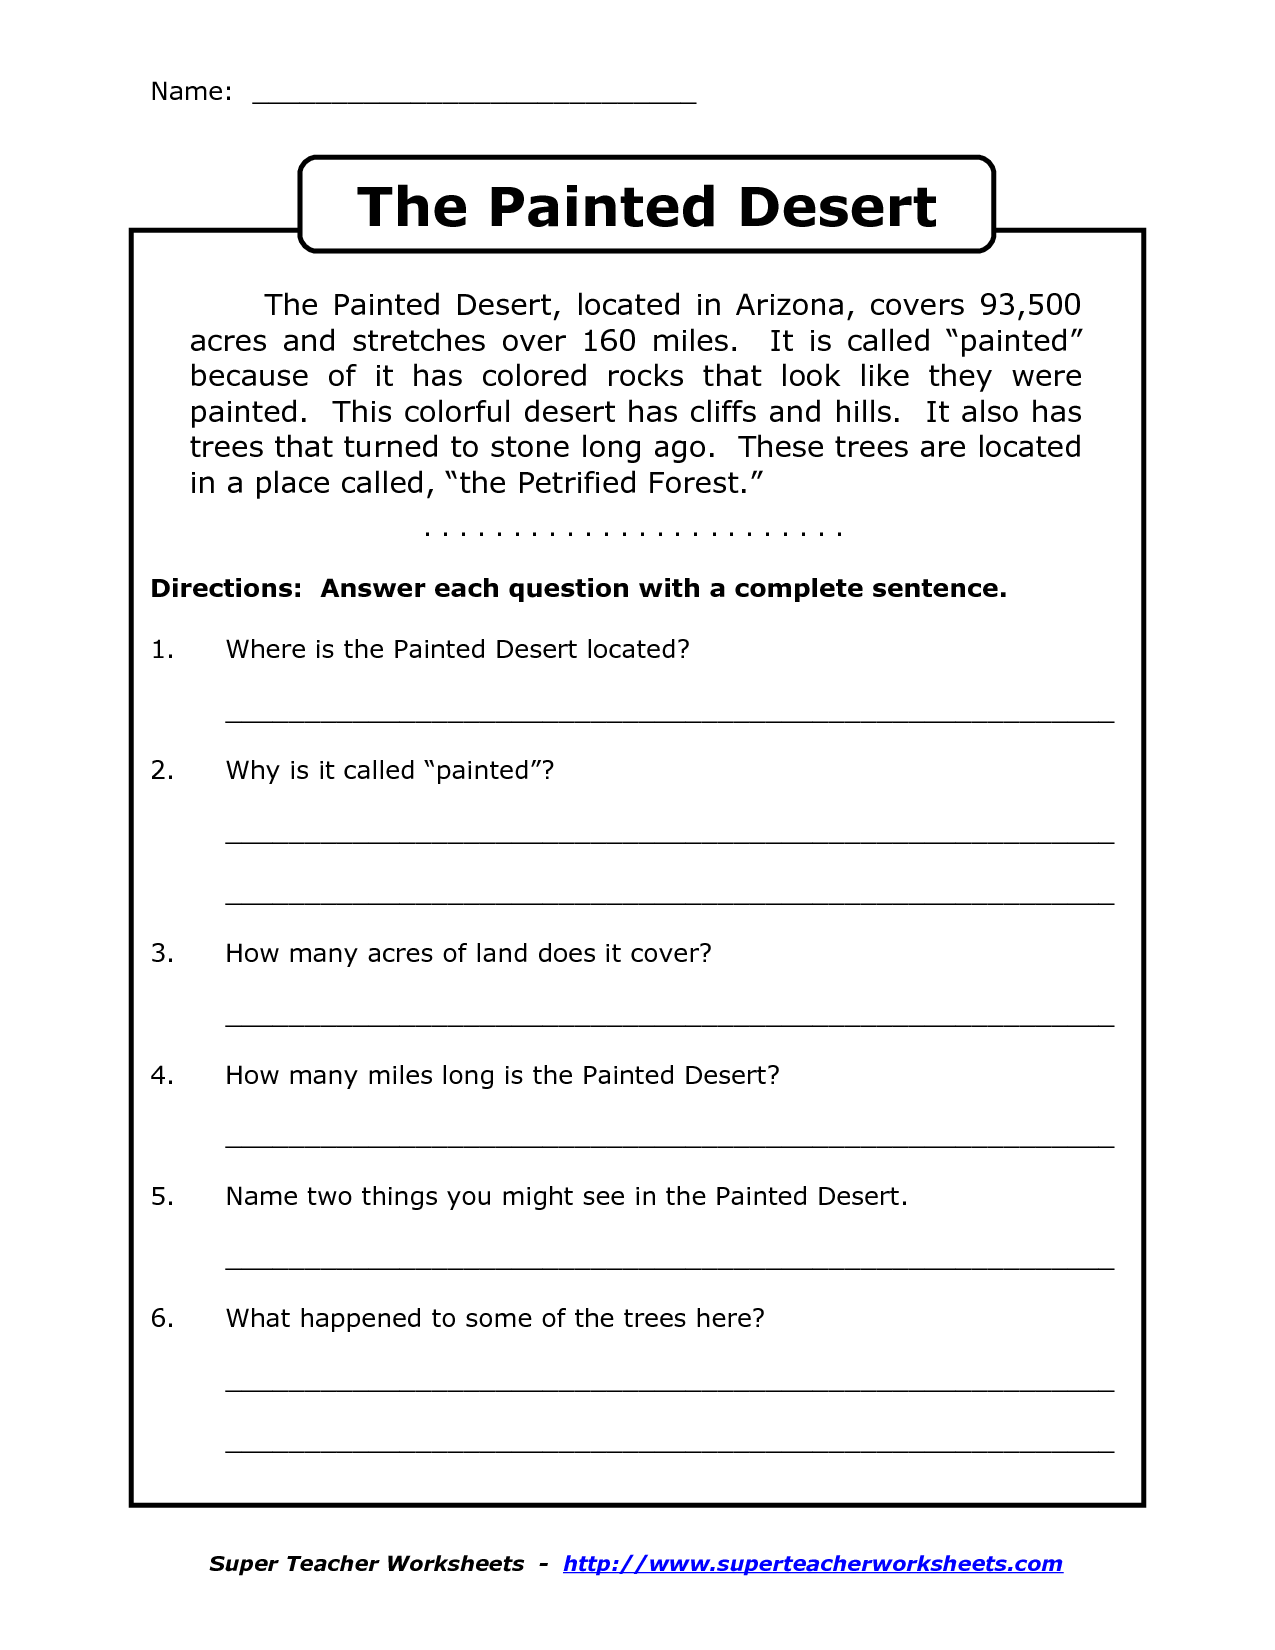 Reading Comprehension Worksheets Grade 3 In